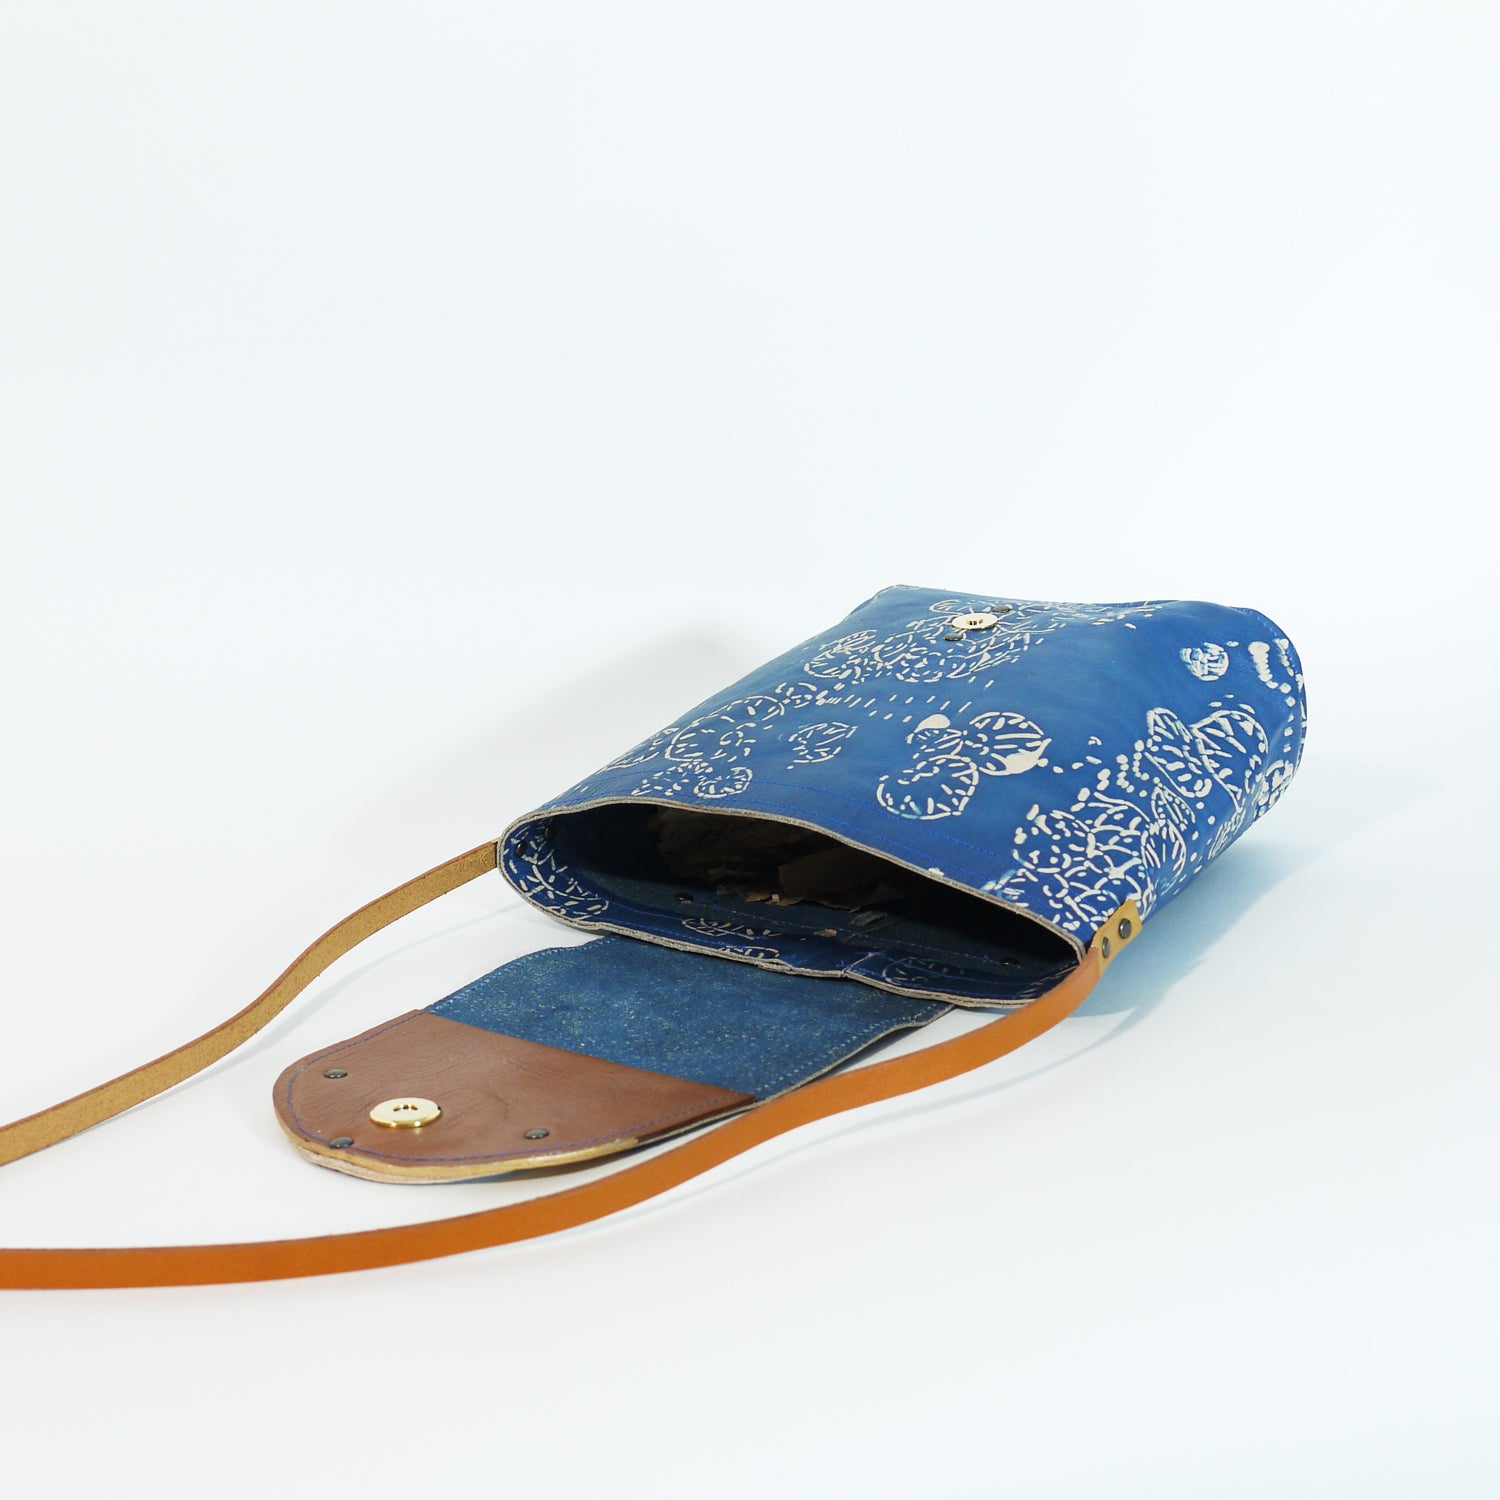 FLORAL INDIGO bucket shoulder bag.